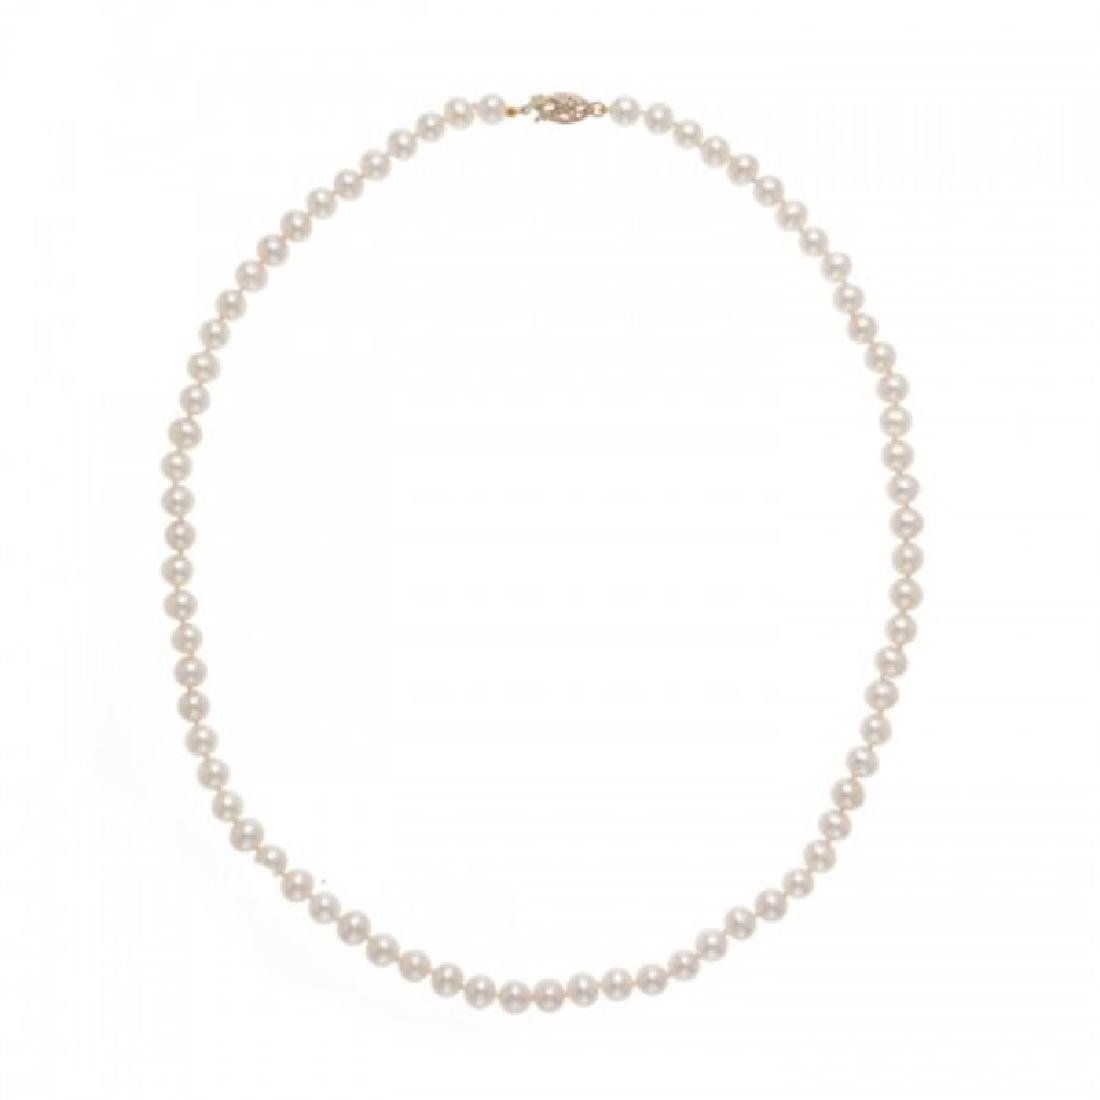 5.5-6.0mm Freshwater Pearl Necklace